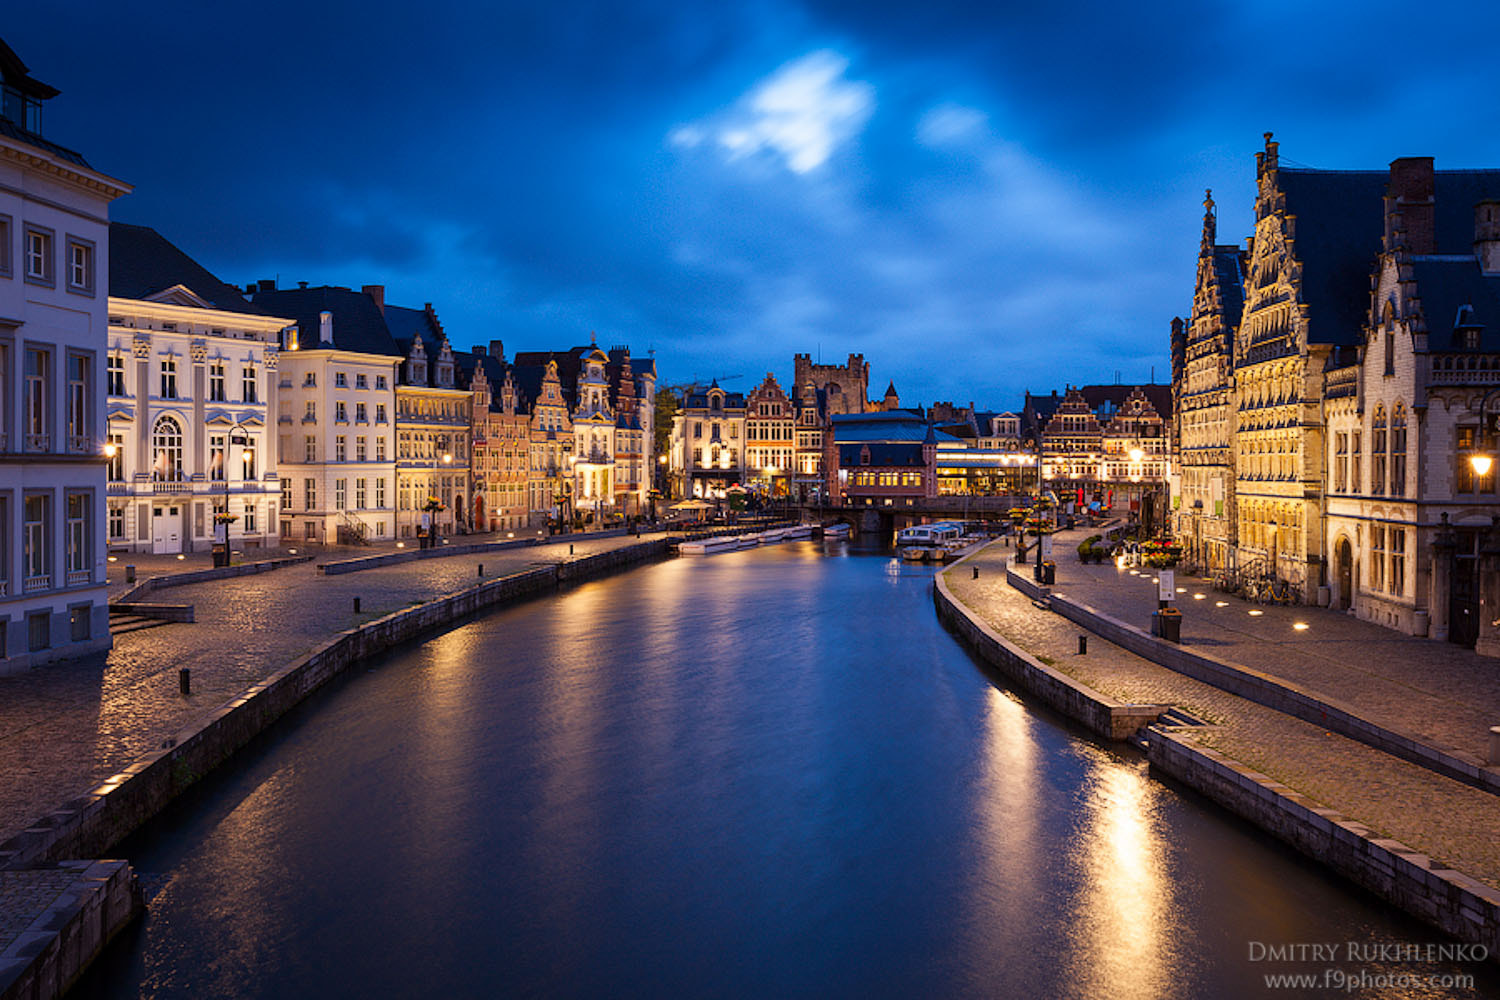 Photograph Evening view of Graslei in Ghent, Belgium by Dmitry Rukhlenko | www.f9photos.com on 500px